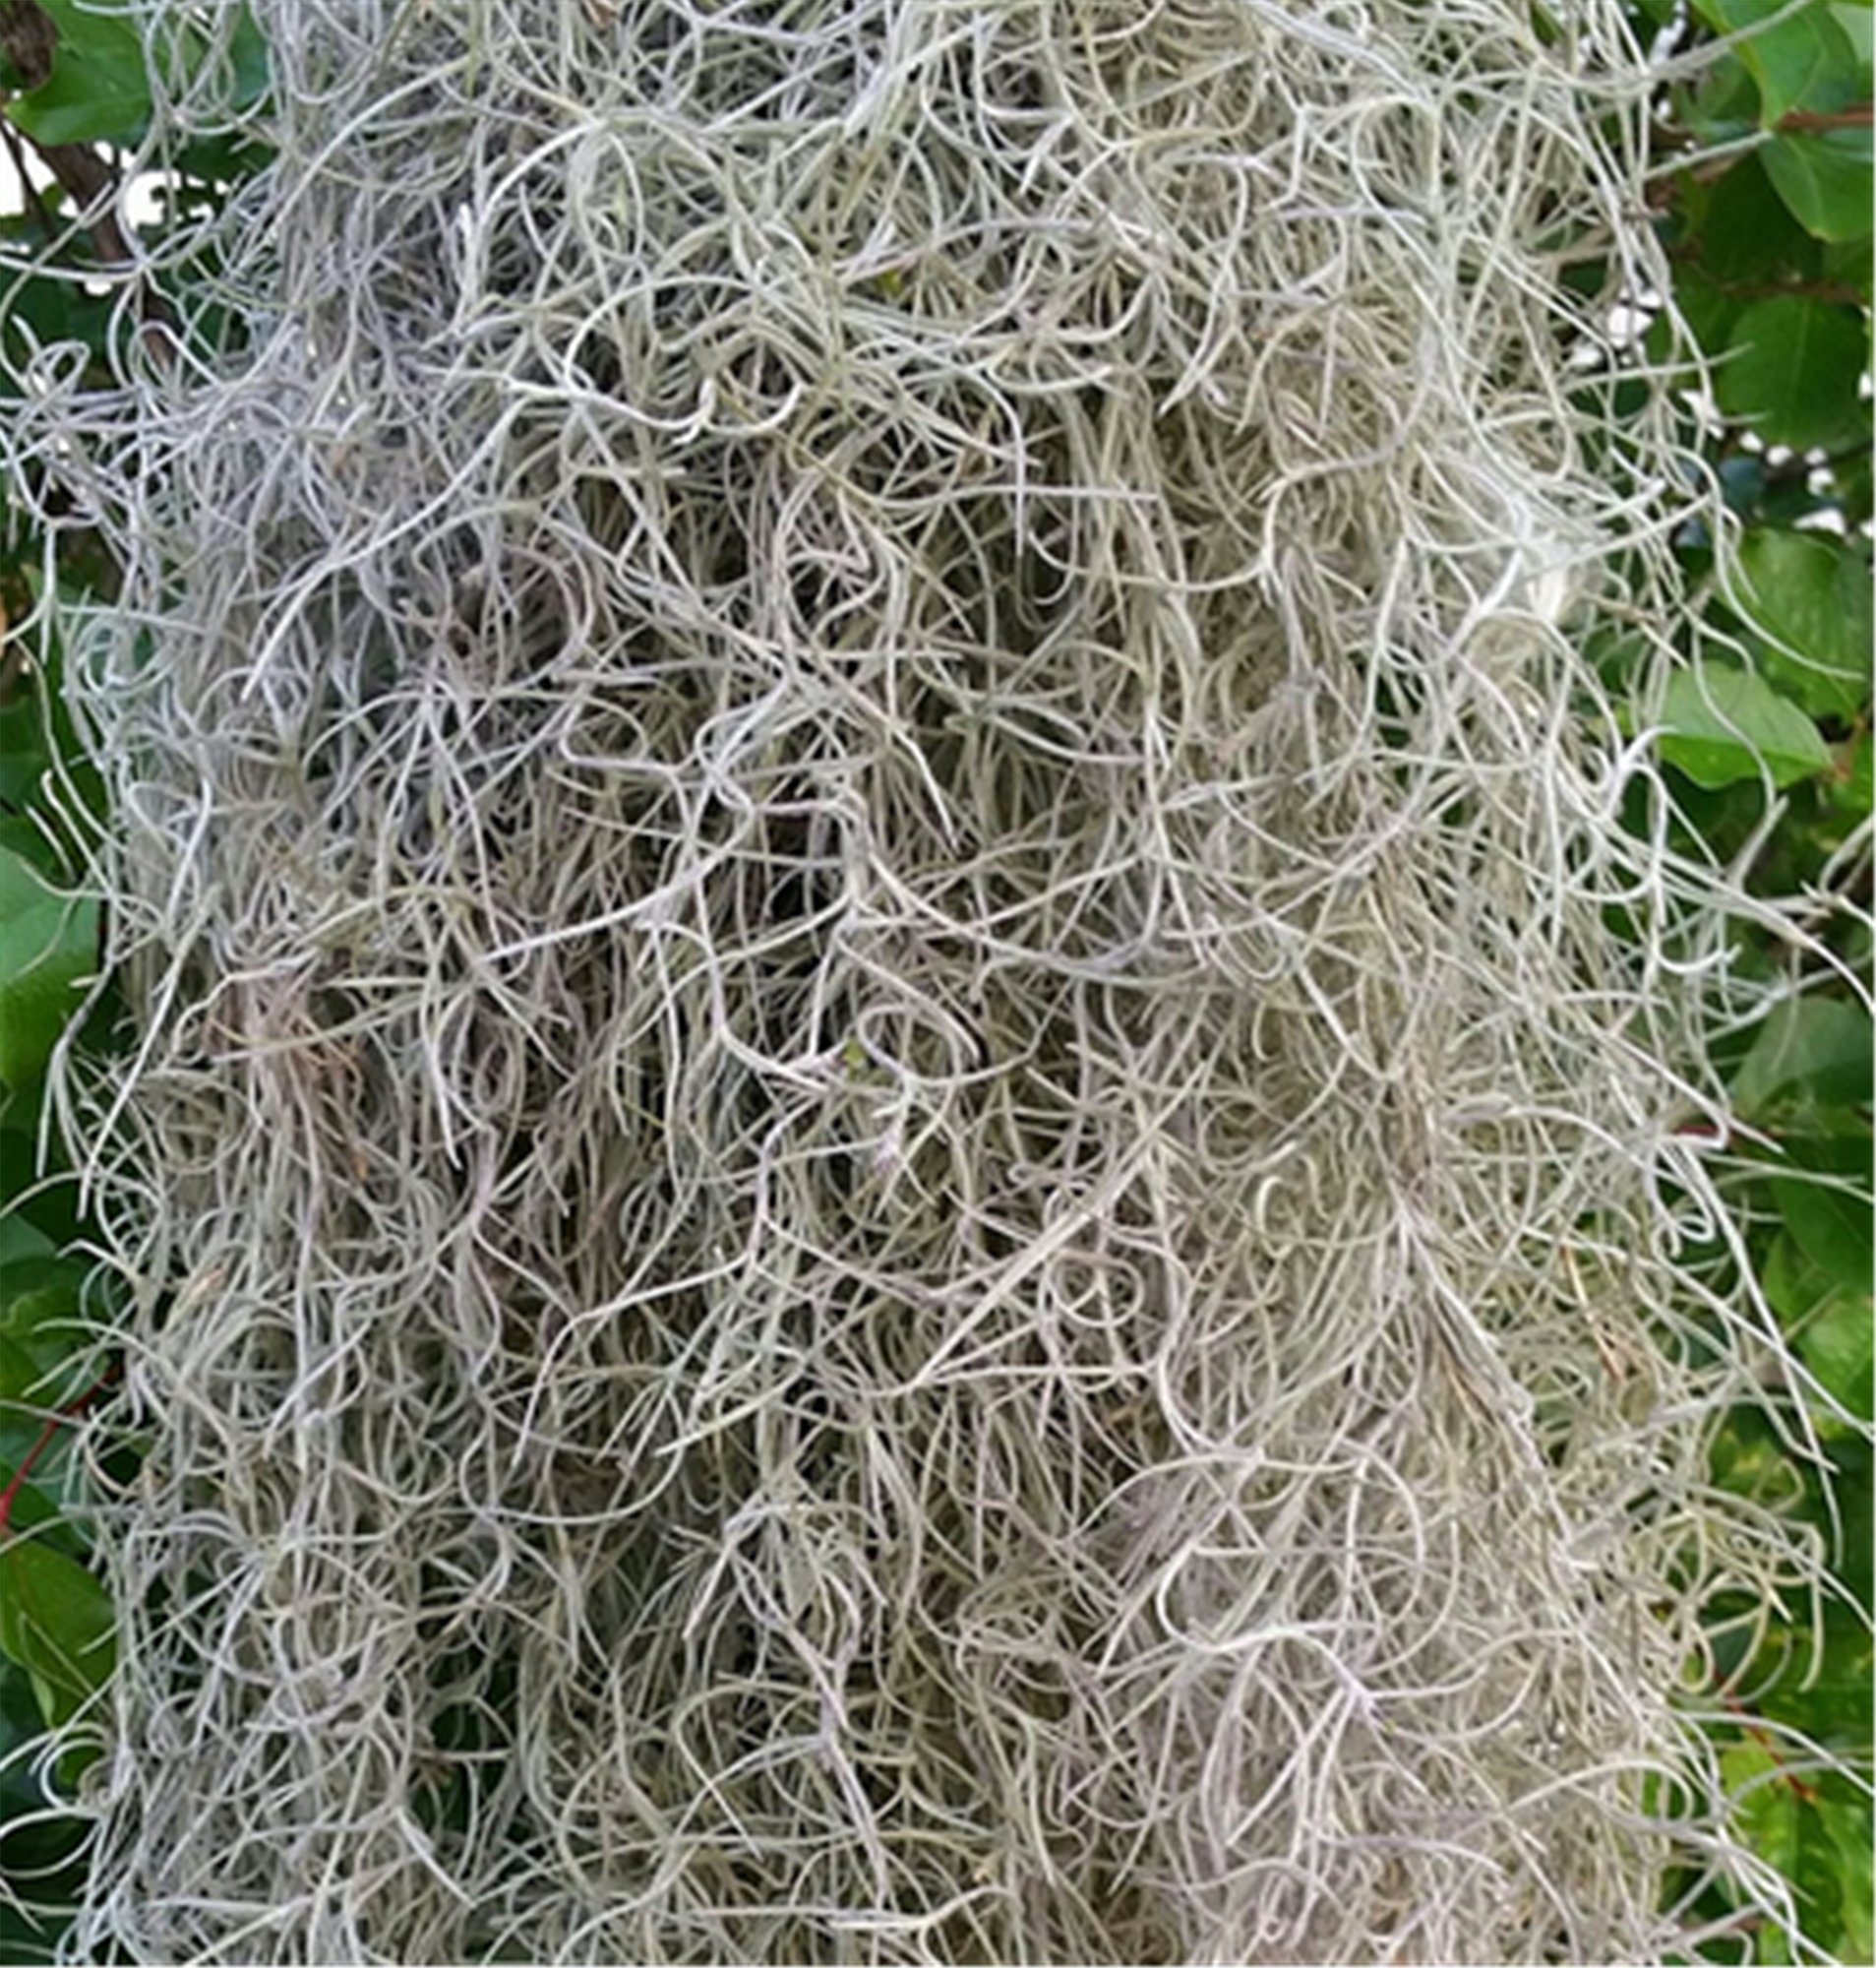 Real Spanish Moss approx 5 lbs boxed, cleaned